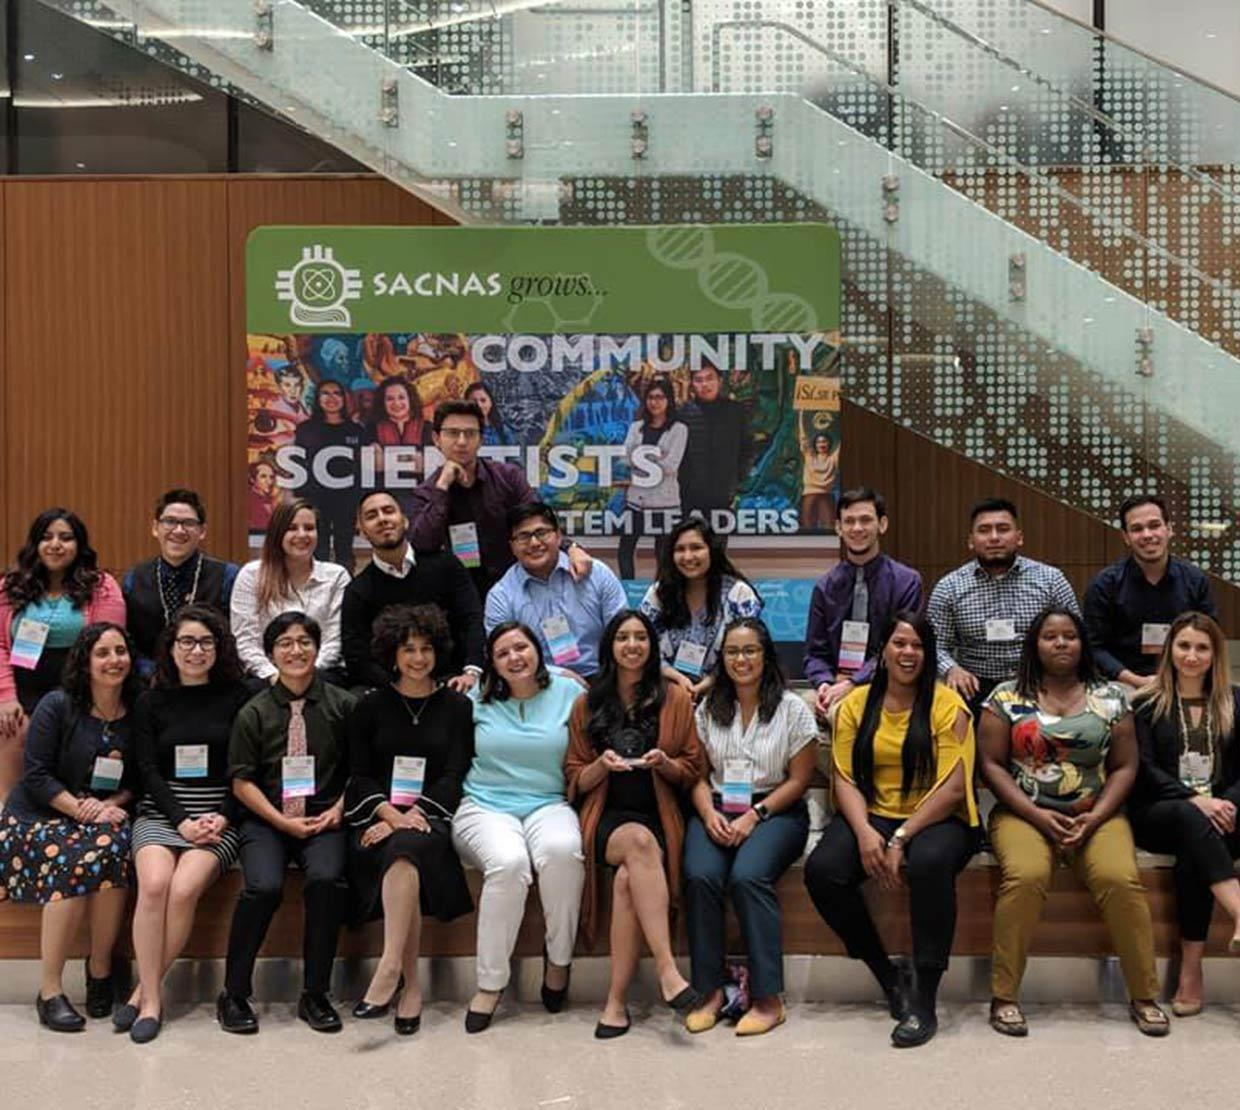 2018 SACNAS attendees taking a group picture in hallway